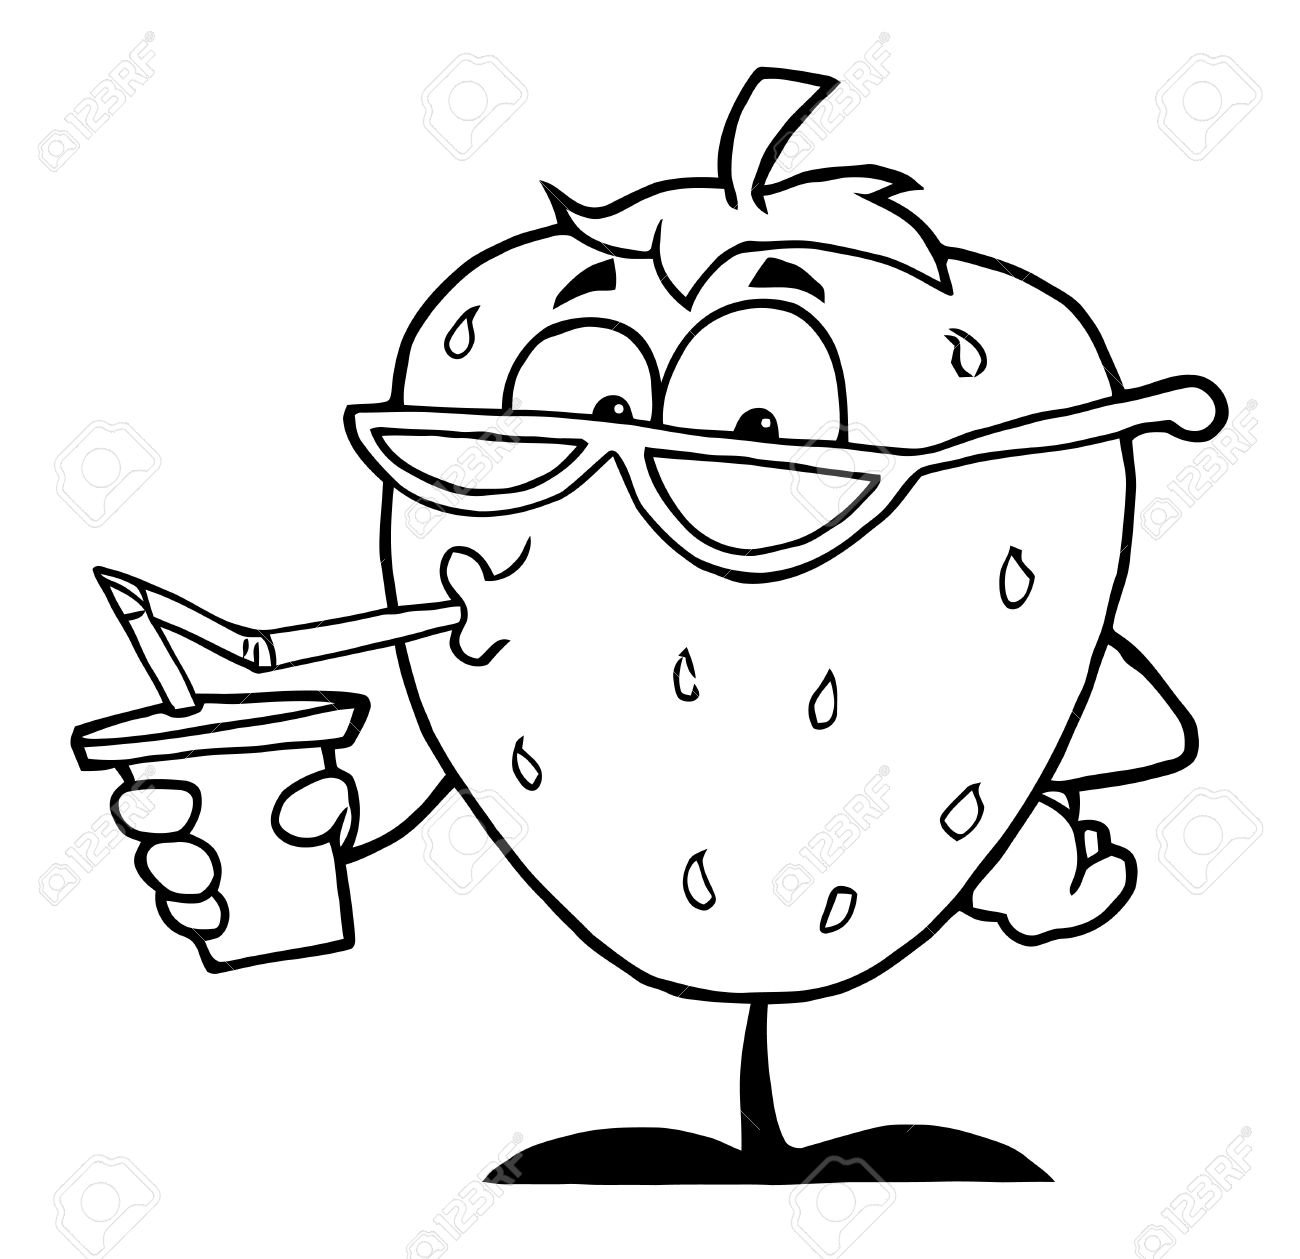 Outline Of A Strawberry Cartoon Character Juice Drink Stock Photo ...